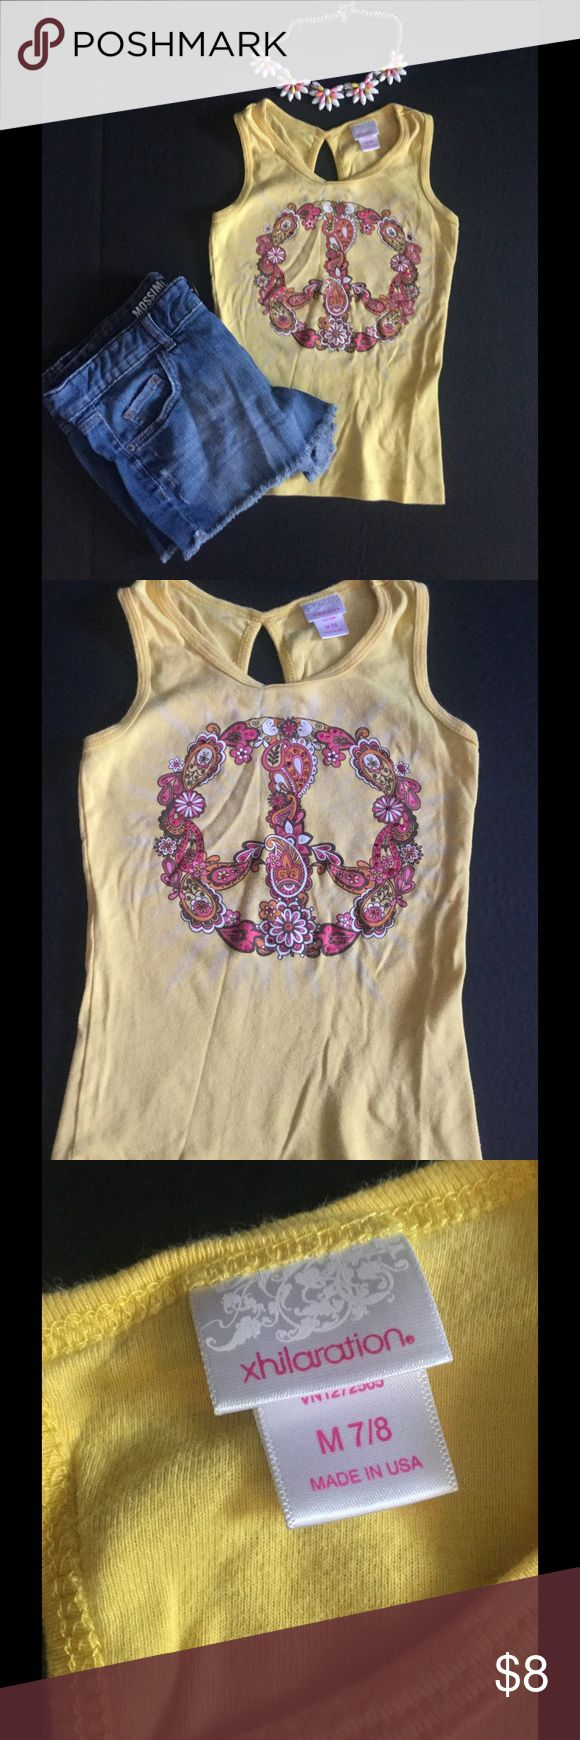 Xhilaration girls tank top Bright yellow tank top, size is medium (7-8) girls. Peace sign is colorful with maroon sequins on it.   Fun summer shirt! Xhilaration Shirts & Tops Tank Tops